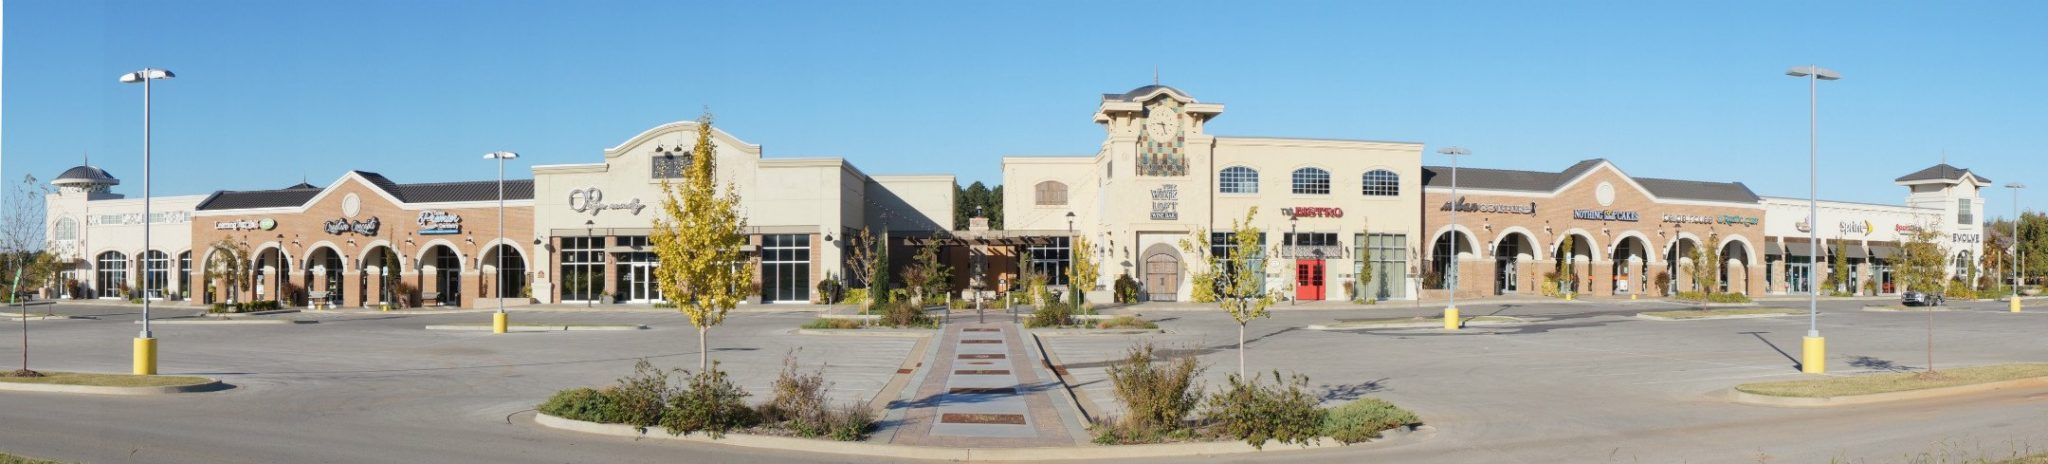 Sip, Savor, Shop and Stroll at The Vineyard on Memorial in Tulsa